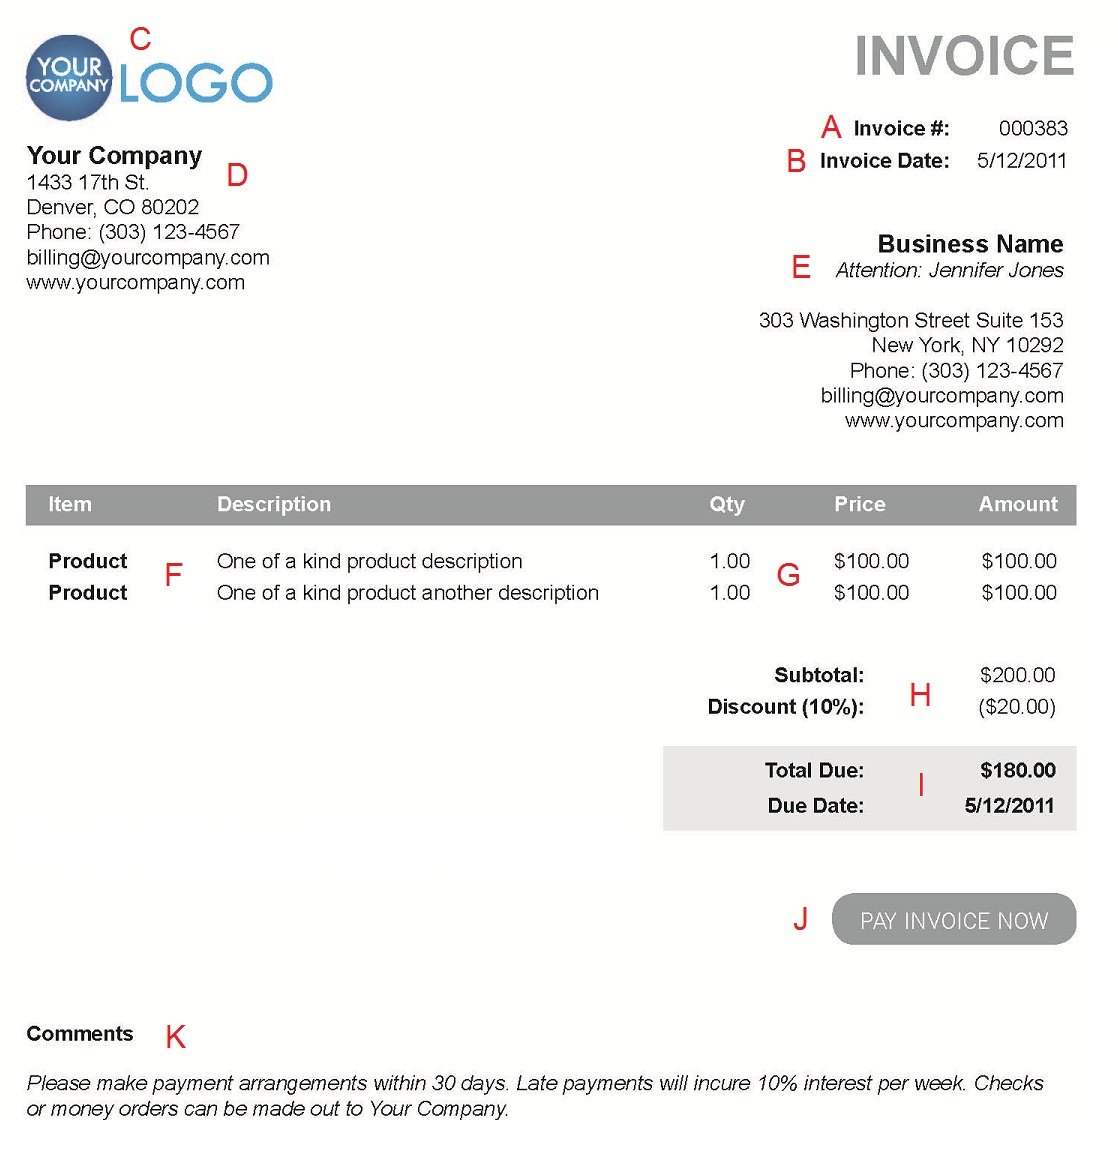 Bringjacobolivierhomeus  Surprising The  Different Sections Of An Electronic Payment Invoice With Outstanding A  With Endearing Receipt Storage Box Also Service Receipt Template Word In Addition Download Receipt And Tracking Certified Mail Return Receipt Requested As Well As Receipt For Rental Deposit Additionally Mac Mail Return Receipt From Paysimplecom With Bringjacobolivierhomeus  Outstanding The  Different Sections Of An Electronic Payment Invoice With Endearing A  And Surprising Receipt Storage Box Also Service Receipt Template Word In Addition Download Receipt From Paysimplecom